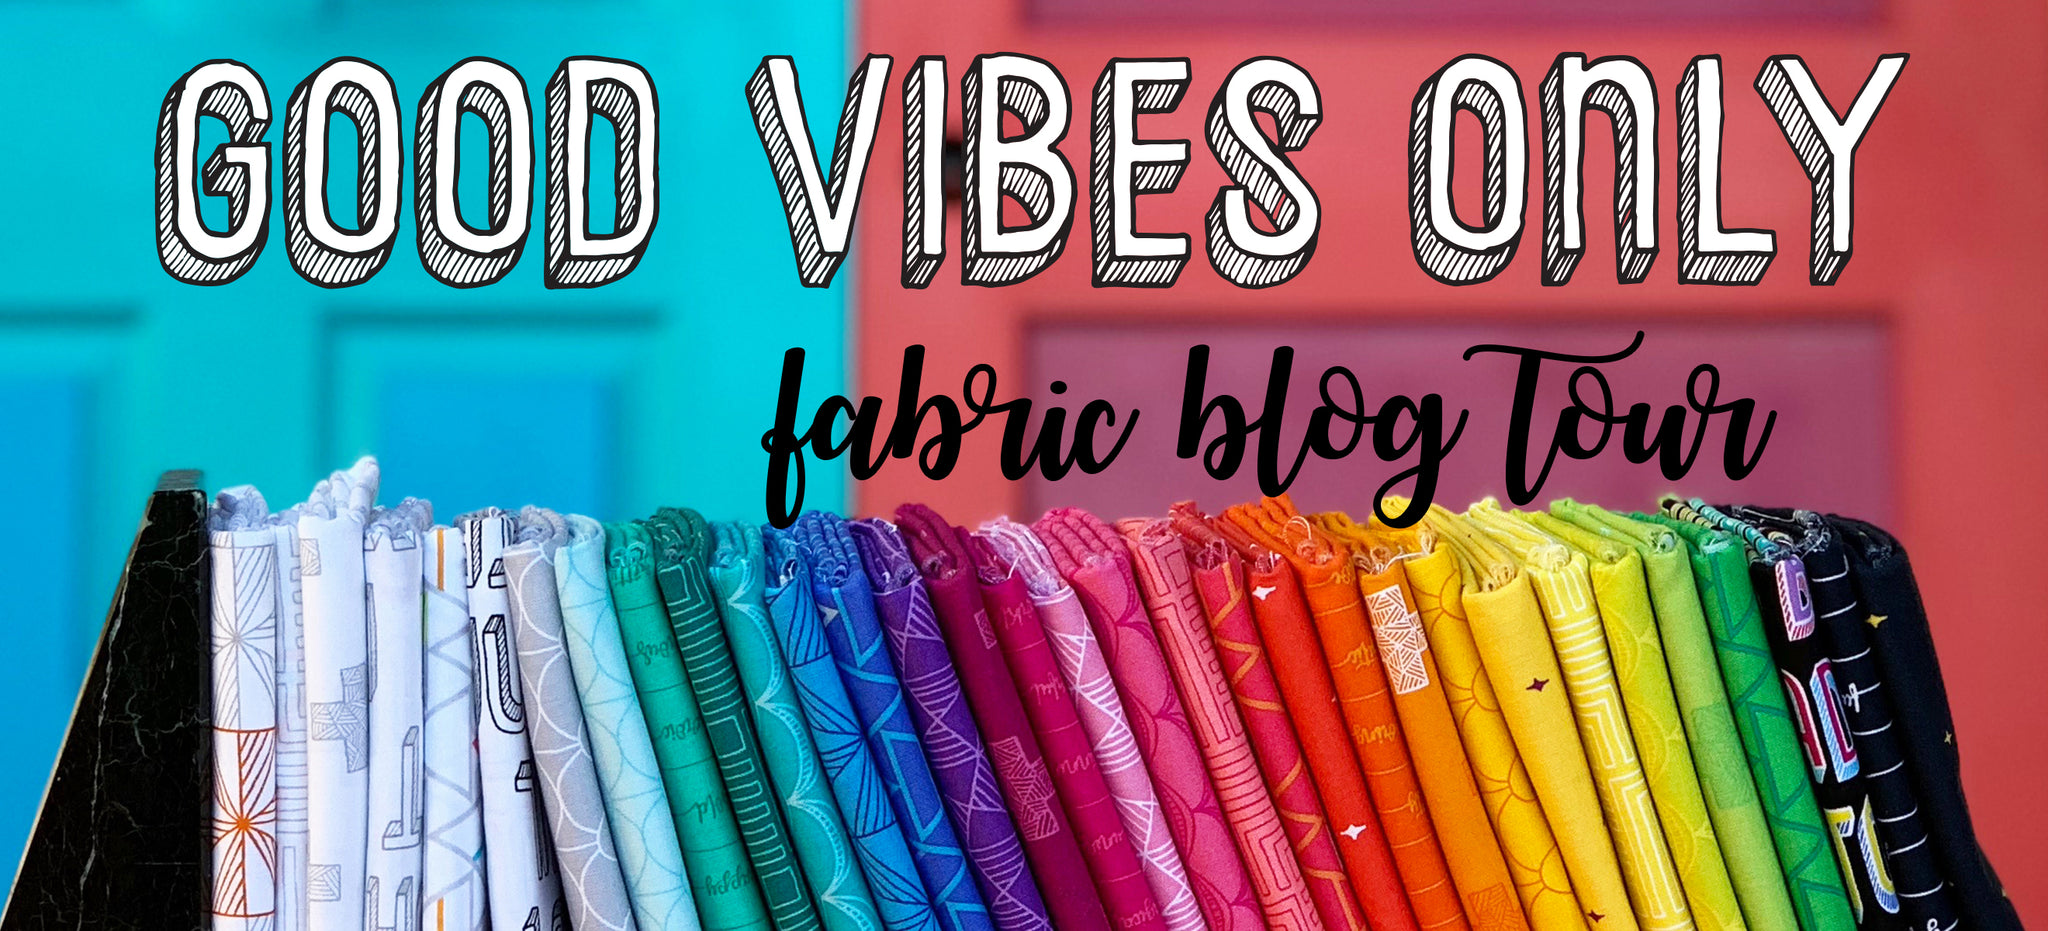 Good Vibes Only Blog Tour